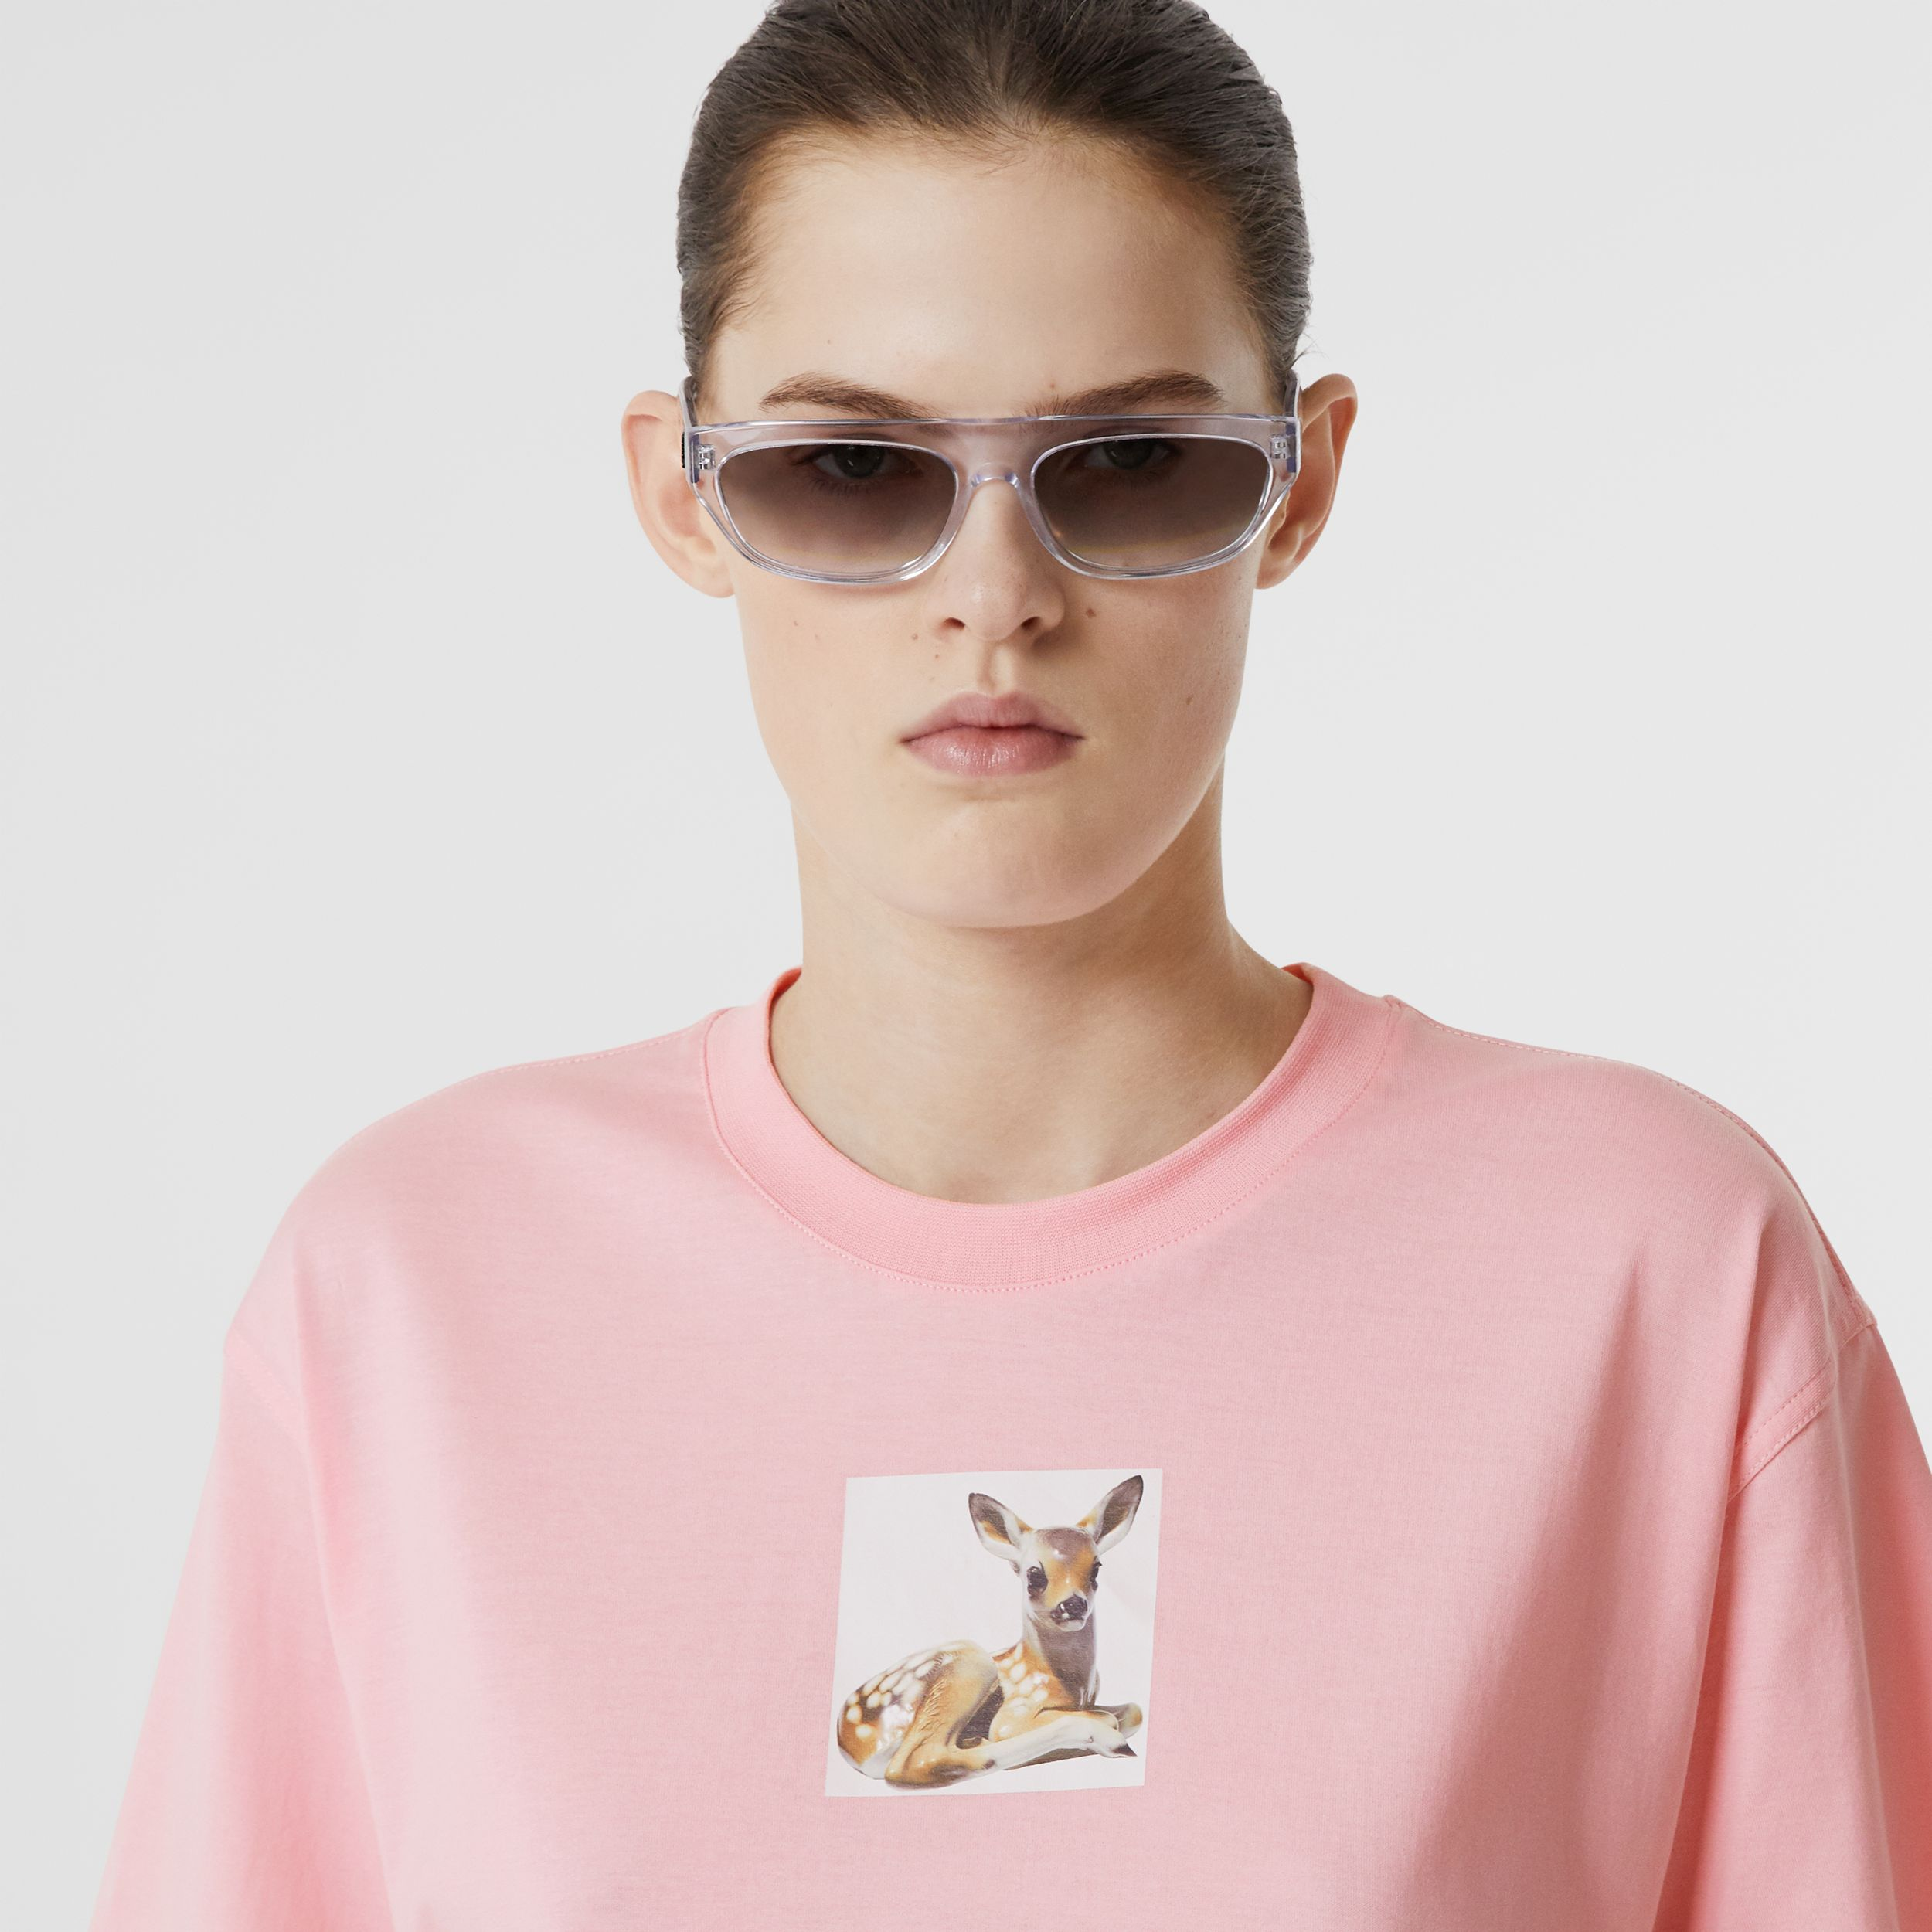 Deer Print Cotton T-shirt in Candy Pink - Women | Burberry Canada - 2